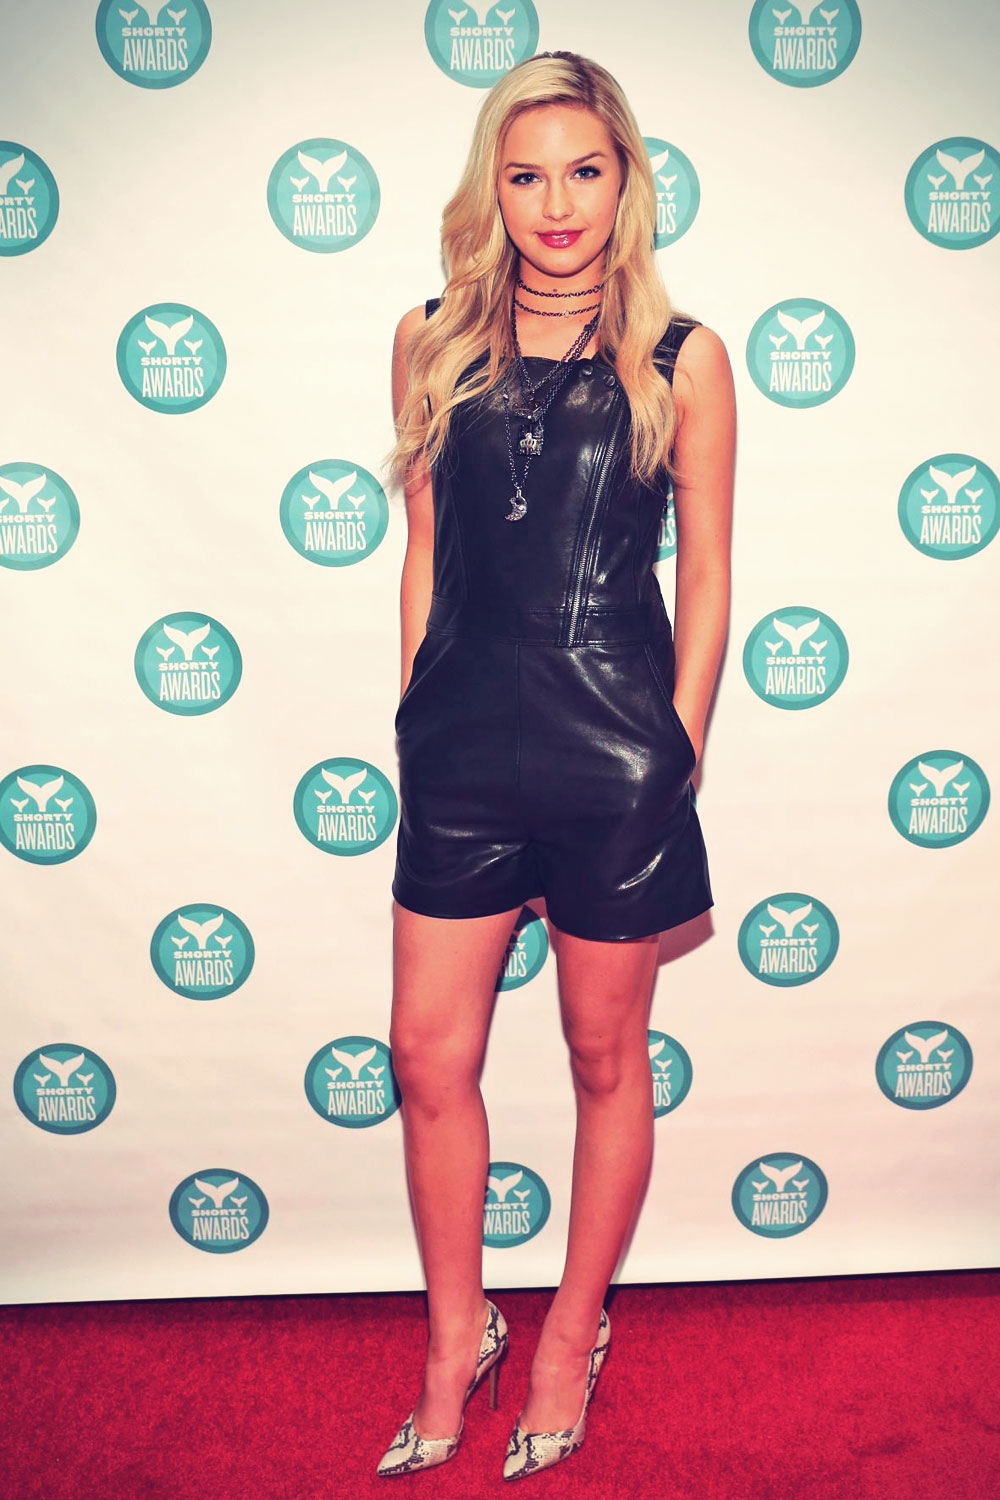 Cassidy Marie Wolf at the 6th Annual Shorty Awards